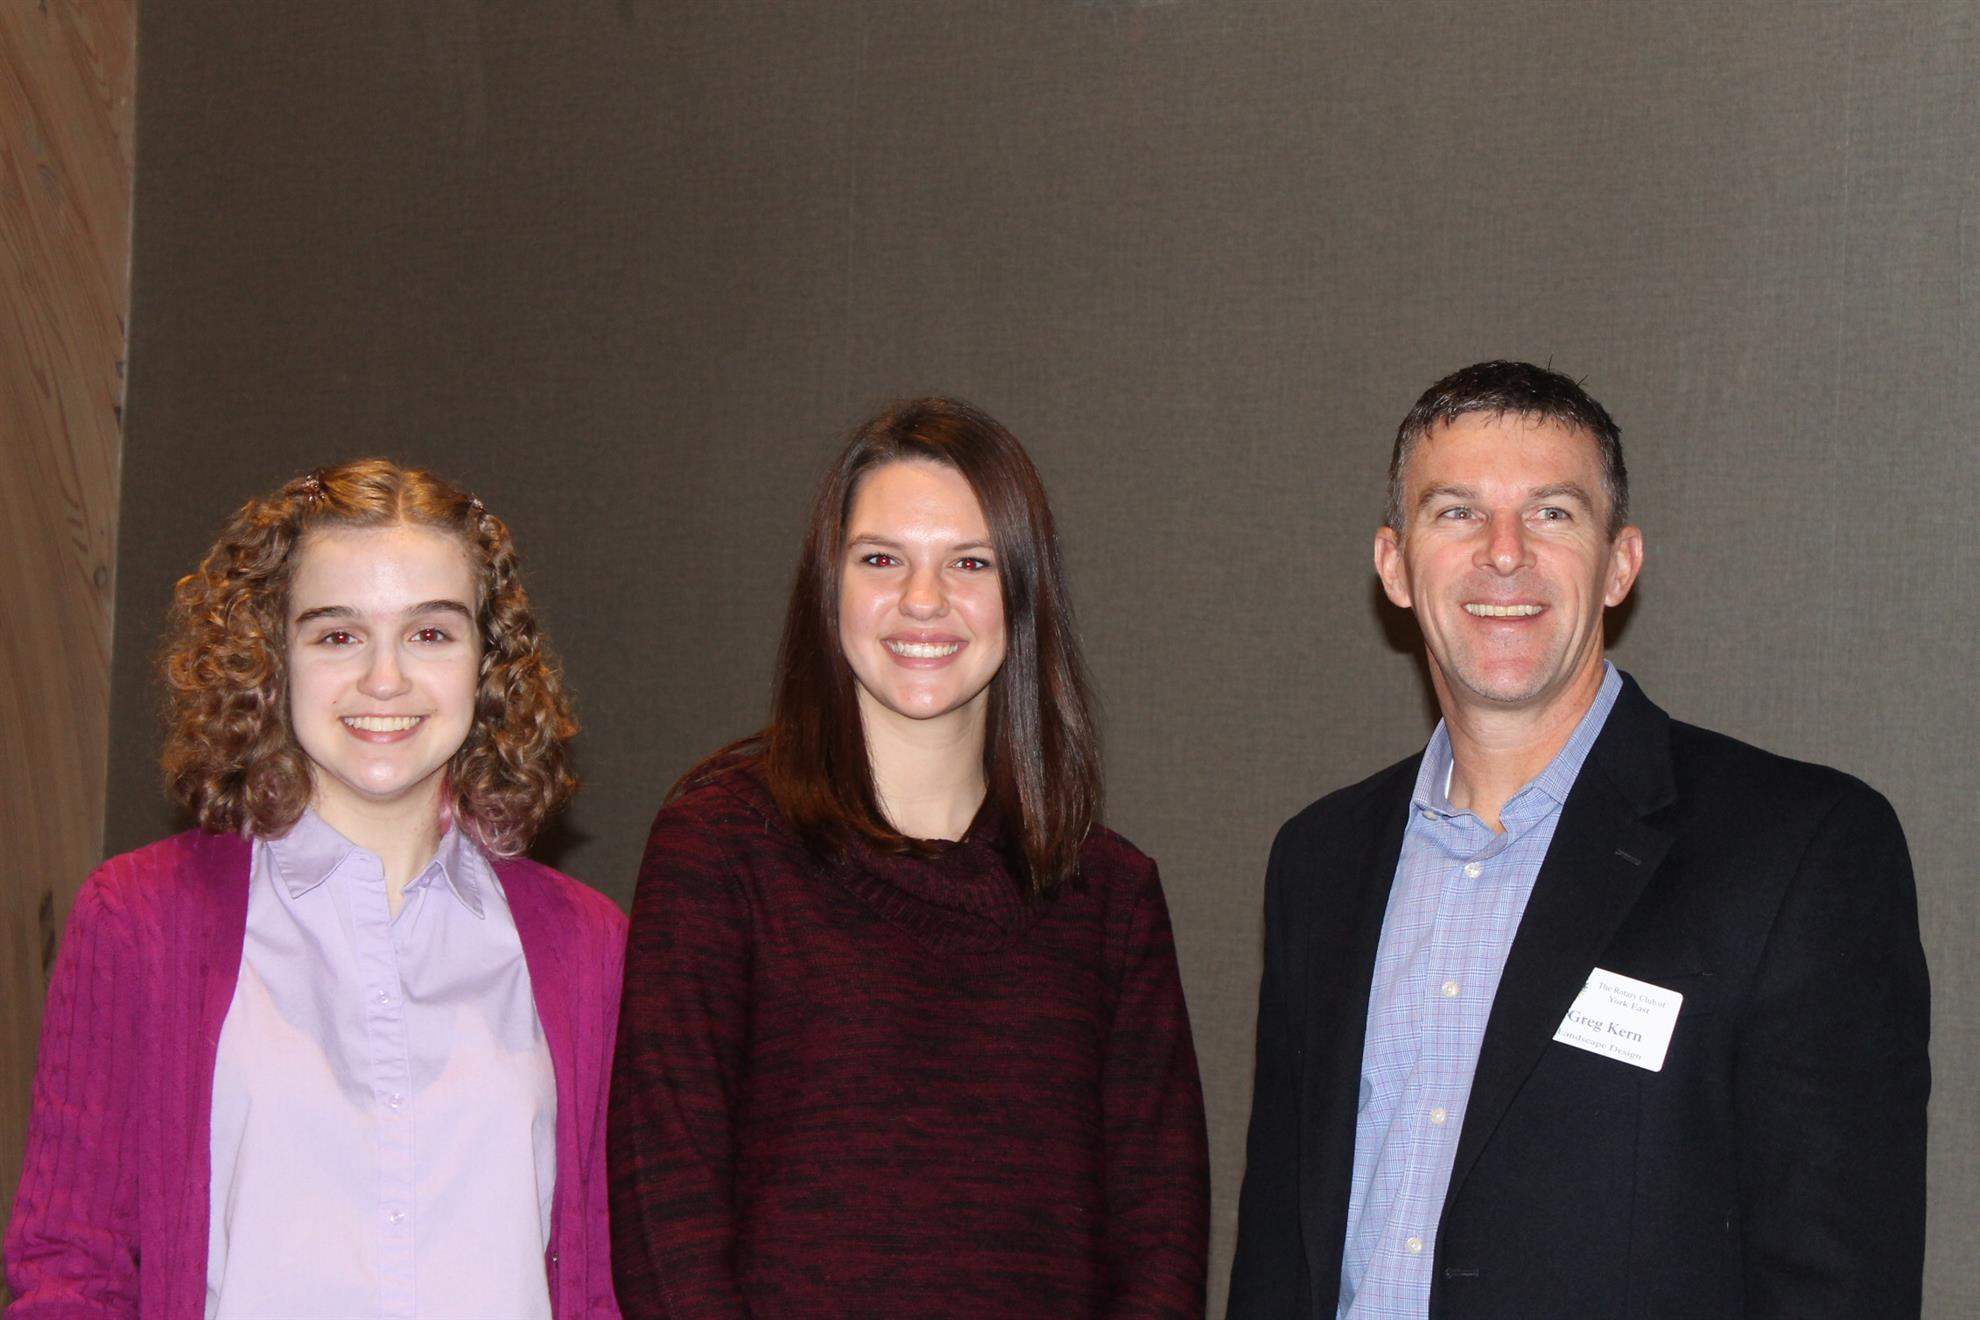 stories rotary club of york east the york east rotary recognized two students from the york county school of technology for the month of catie noble junior and tori sneeringer